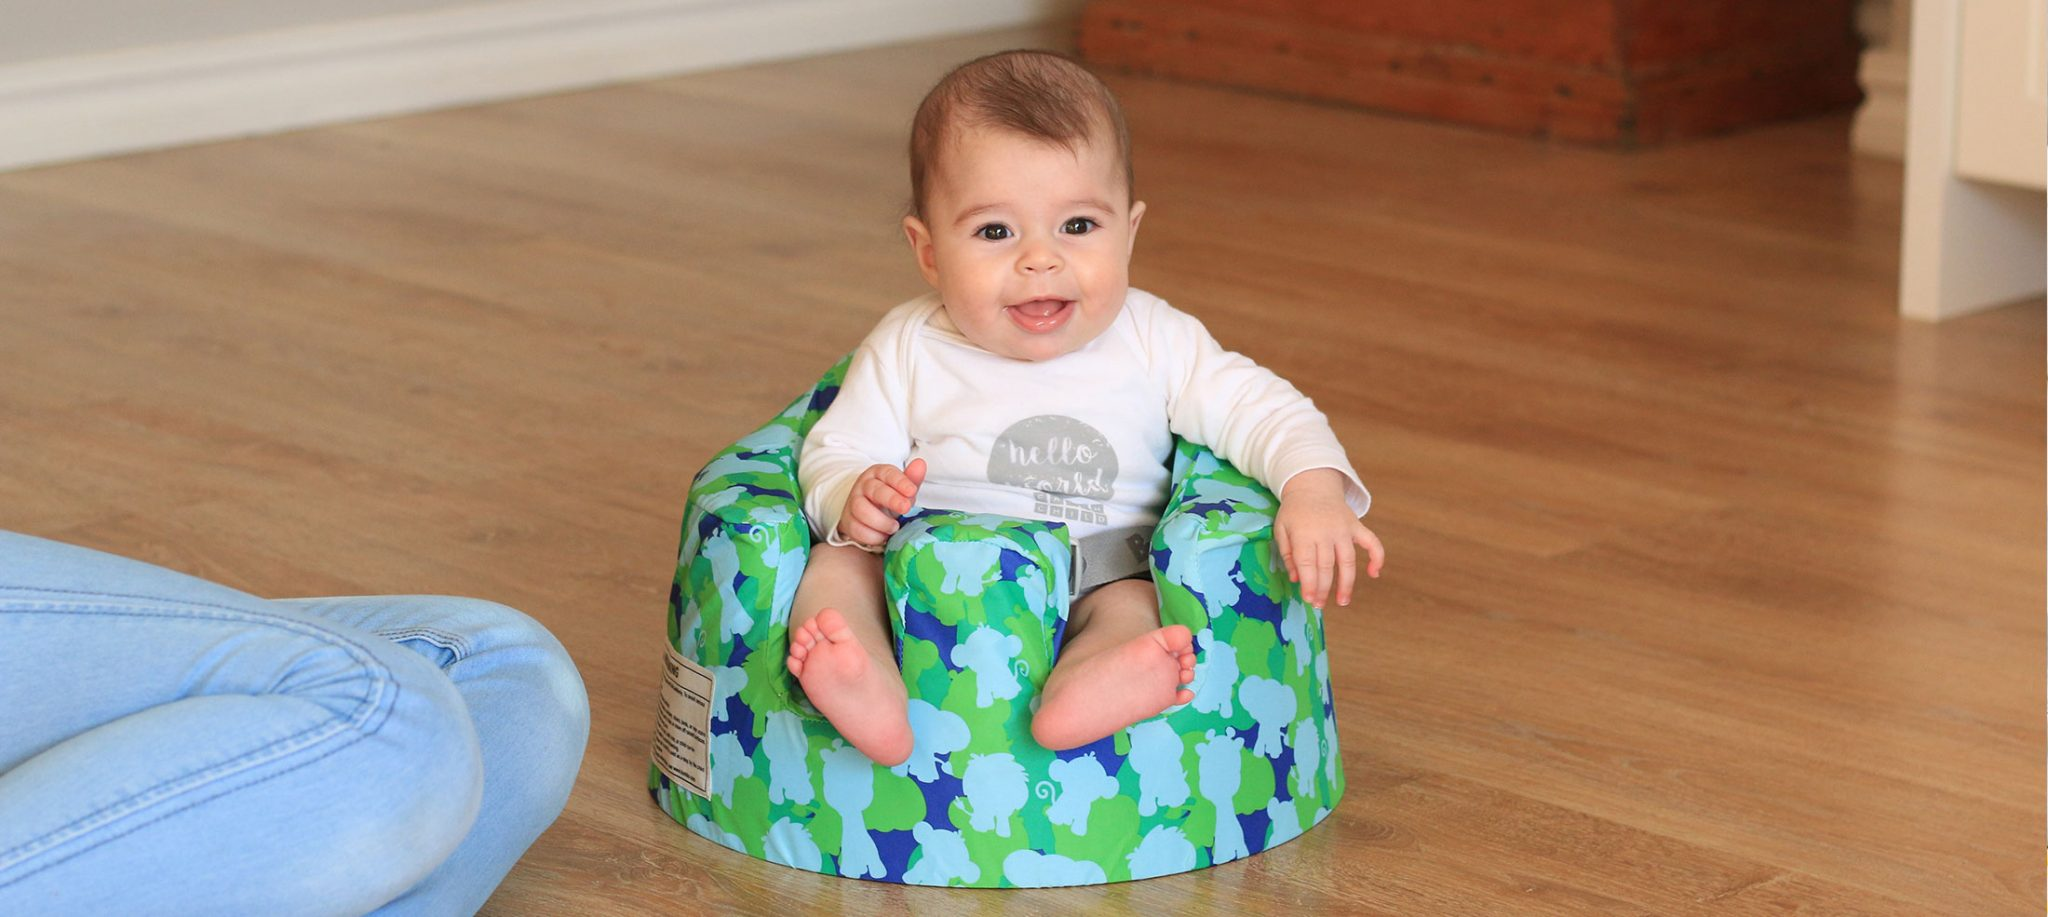 Bumbo Chair Recall Bumbo Usa High Quality Infant And Toddler Products